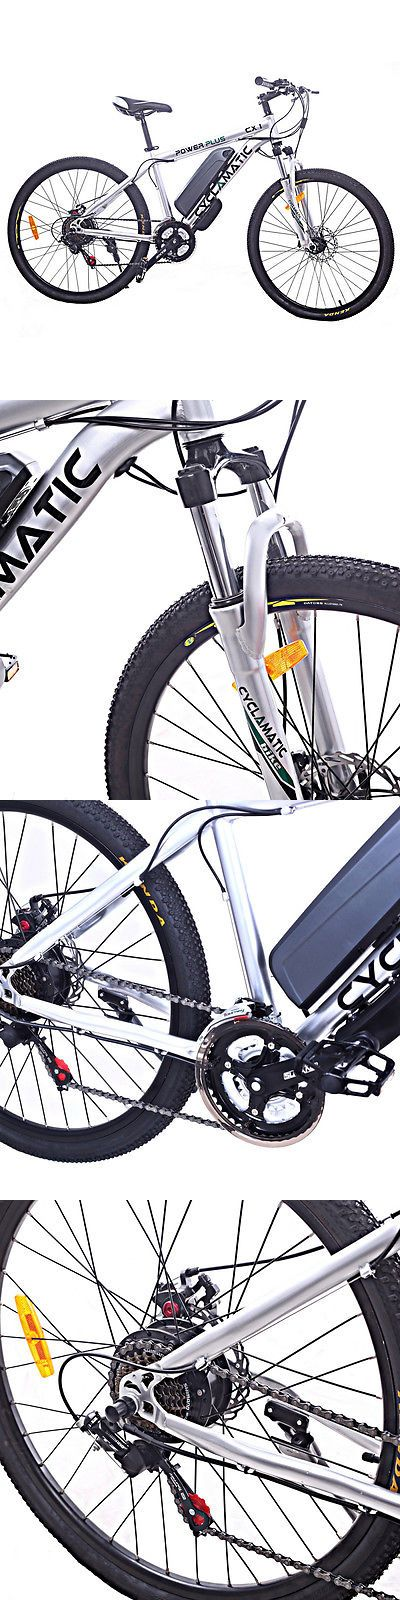 Electric Bicycles 74469: Cyclamatic Power Plus Cx1 Electric Mountain Bike -> BUY IT NOW ONLY: $599.99 on eBay!